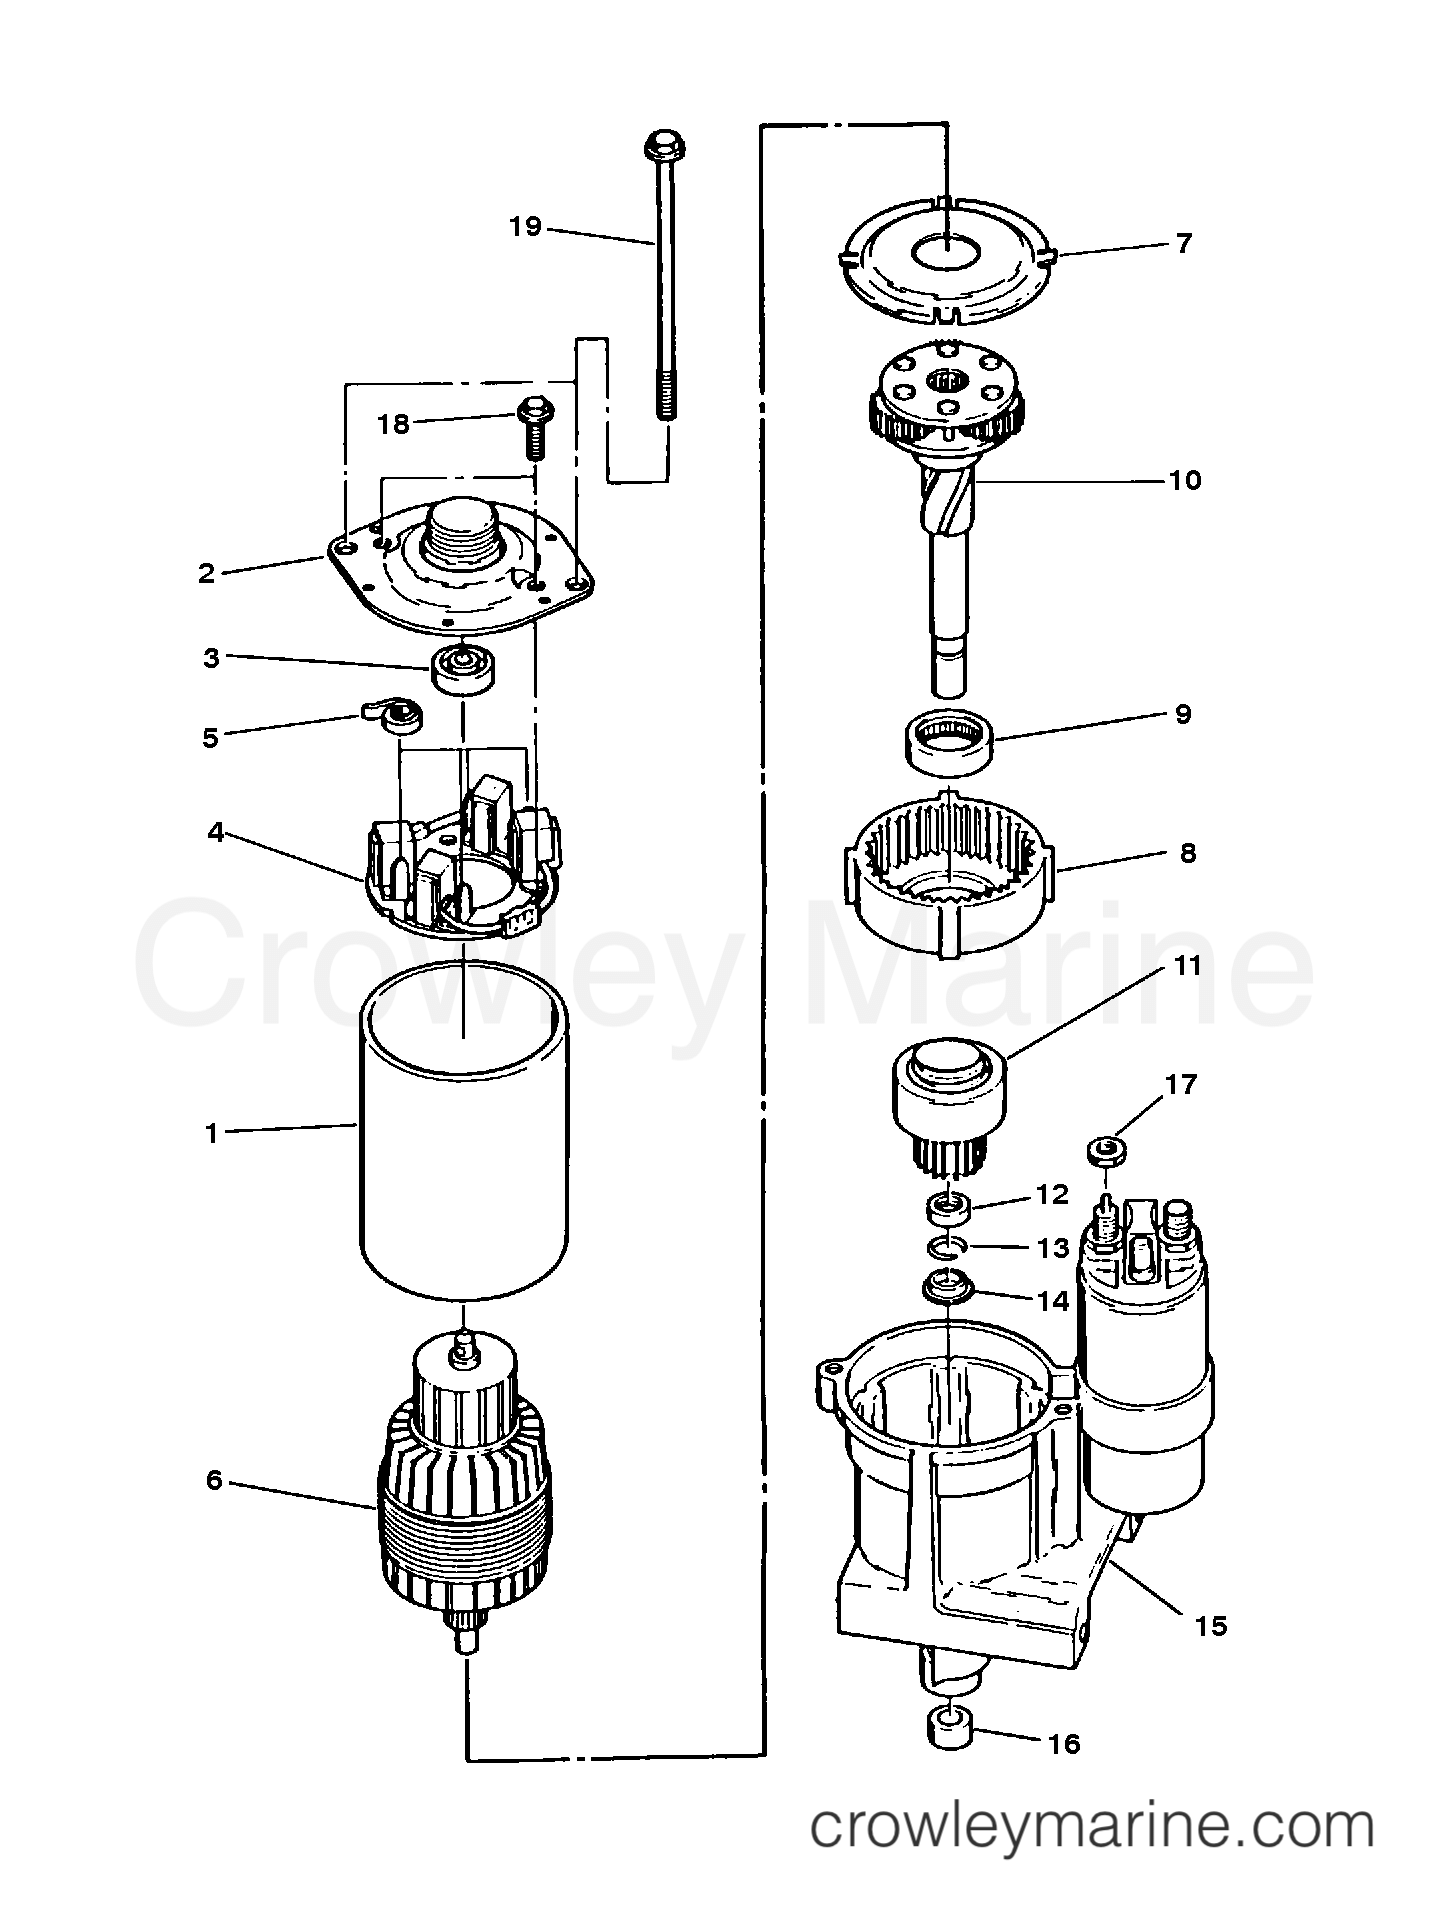 1992 Mercruiser Race Sterndrive 500 [III/IV] - 4500740EH - STARTER ASSEMBLY (BRAVO PLUG IN MODELS) (50-822330A2) section